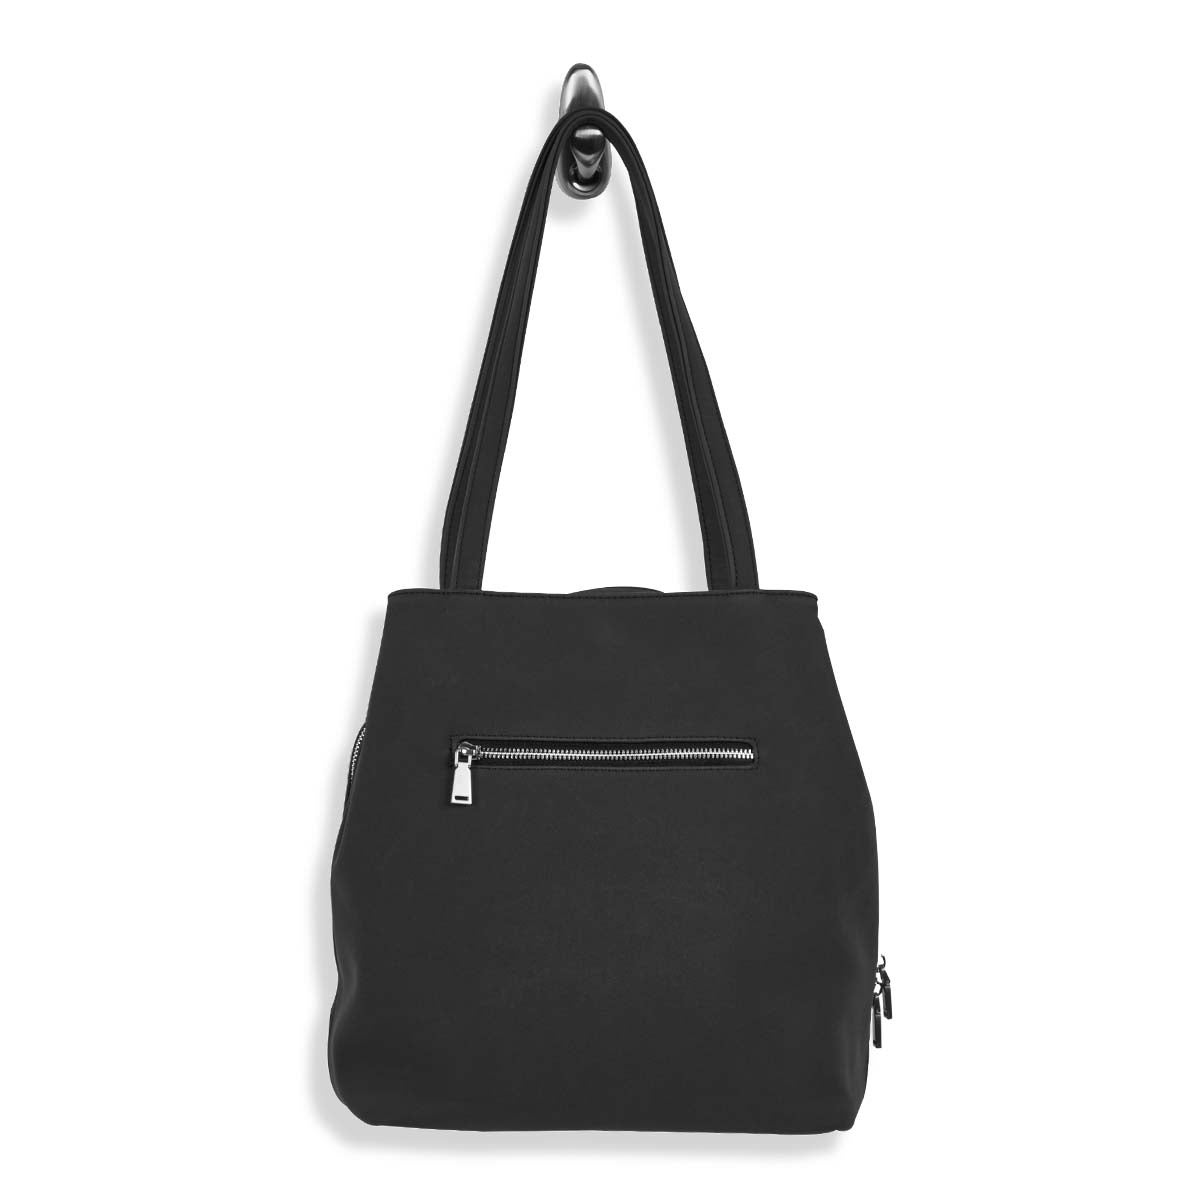 Lds SOHO Triple Compartment blk satchel